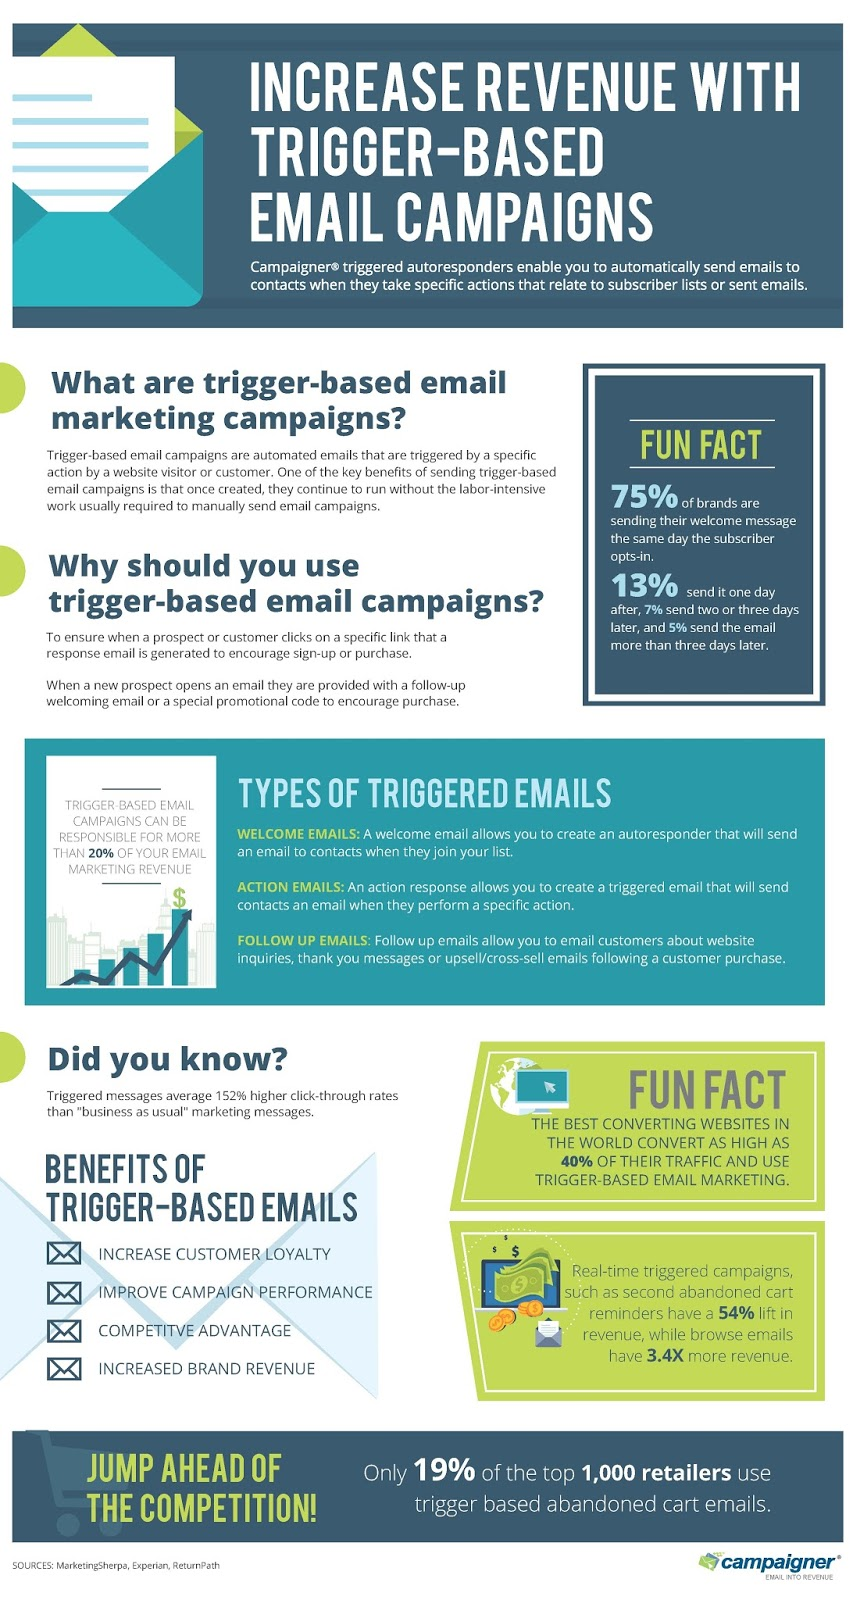 Increase Revenue with Trigger-Based Email Campaigns